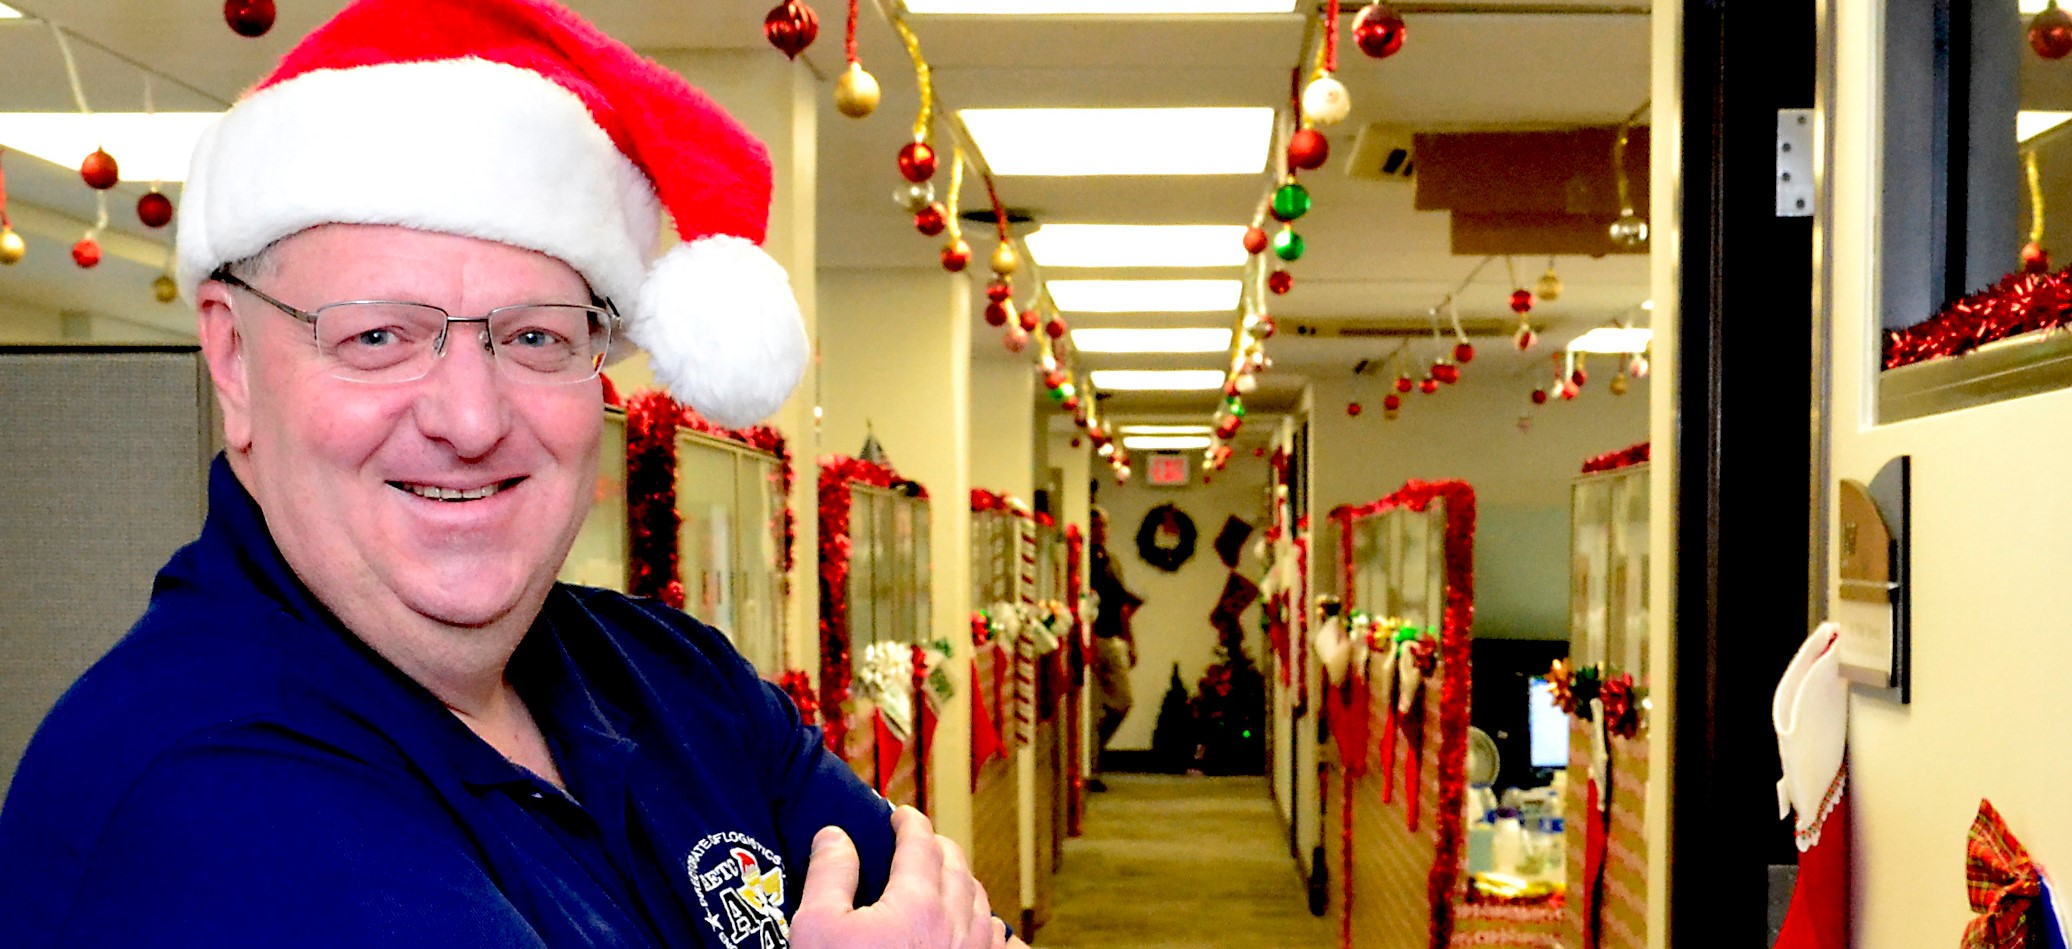 Collette Christmas – Spreading Cheer Every Year